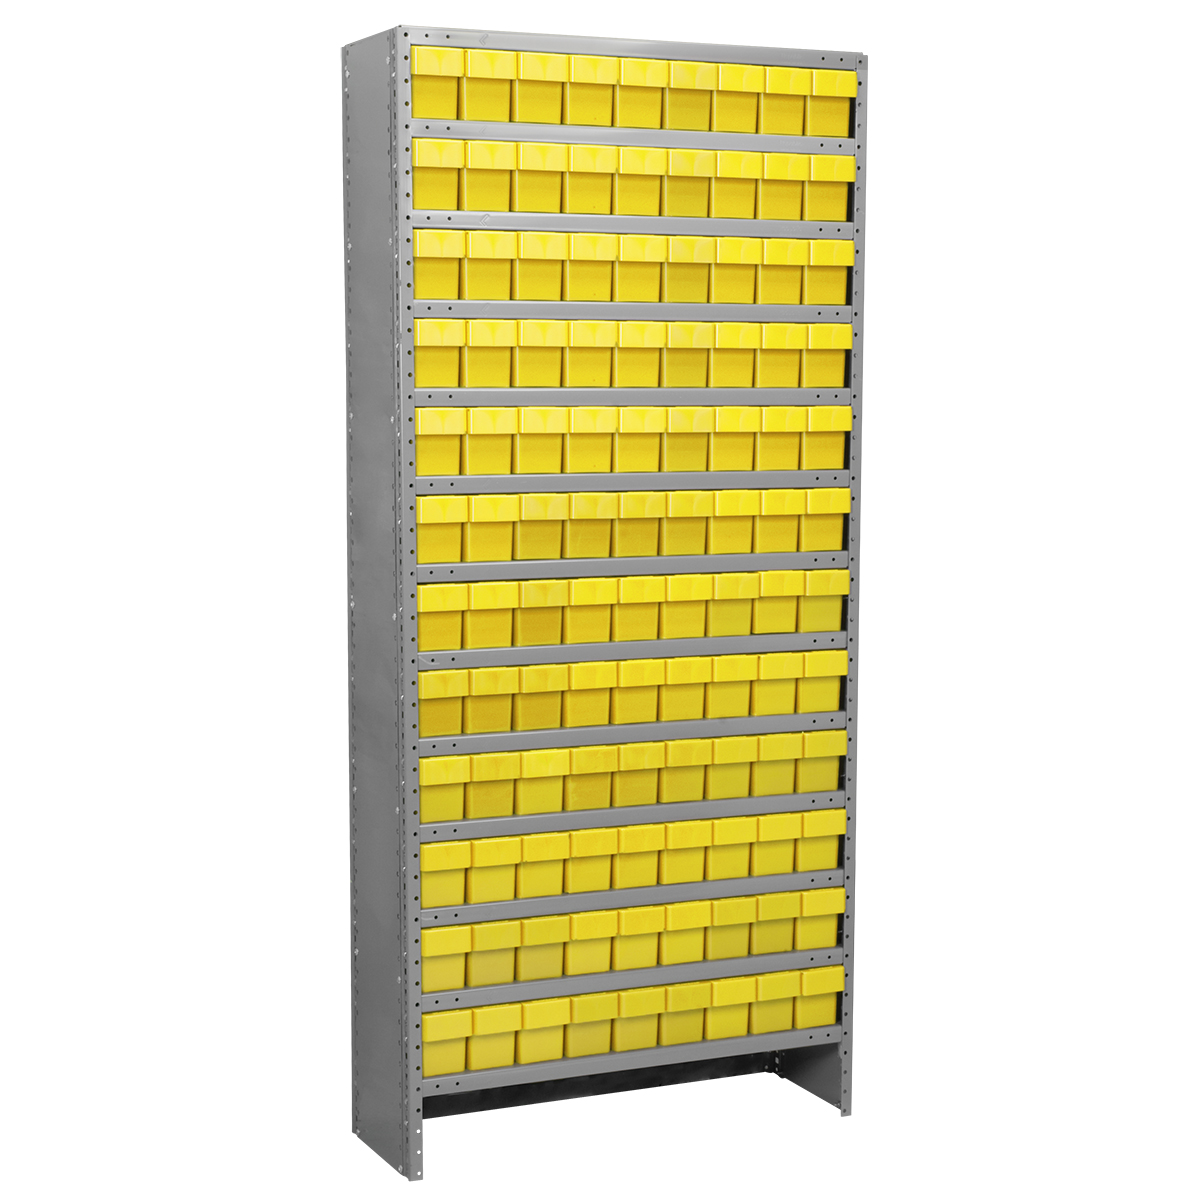 Enclosed Steel Shelving Kit, 12x36x79, 108 AkroDrawers, Gray/Yellow.  This item sold in carton quantities of 1.